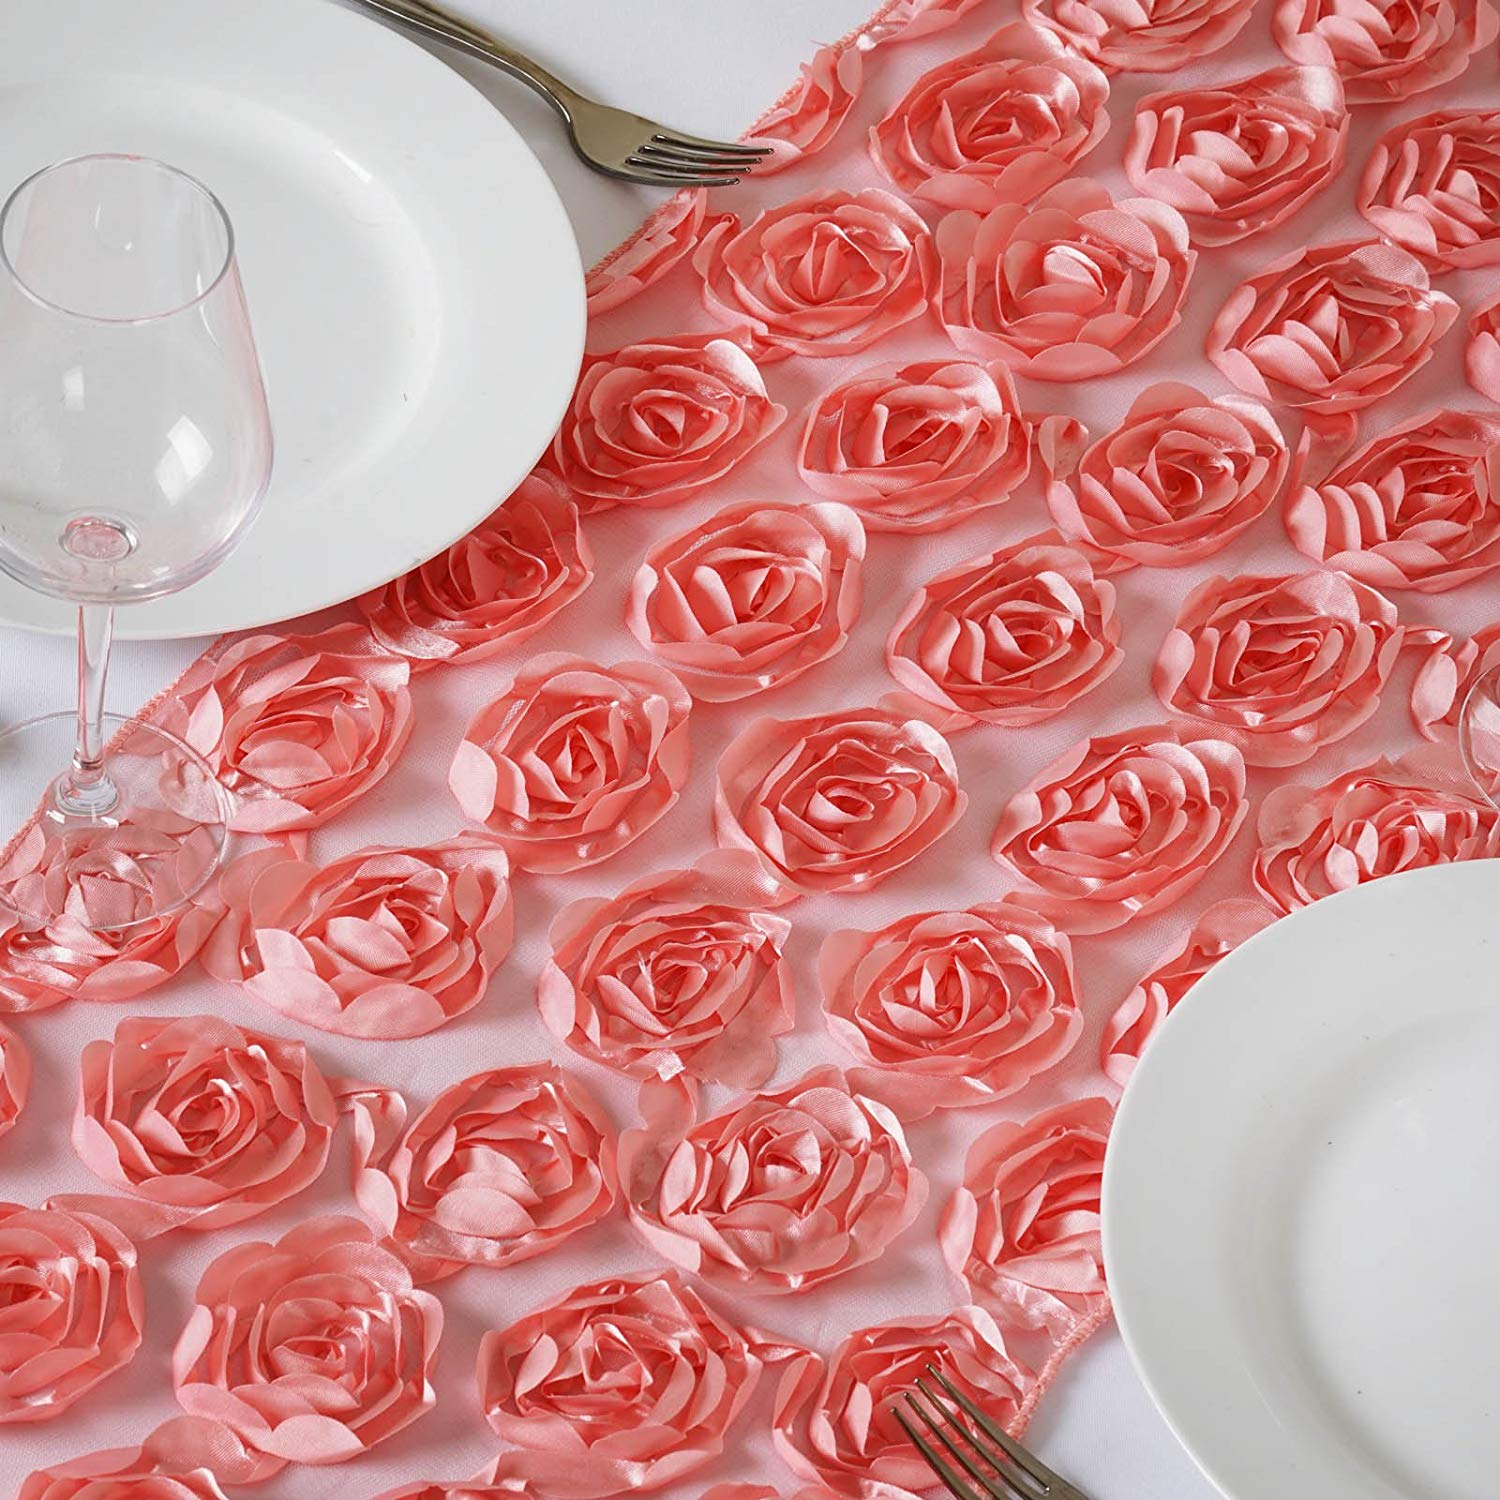 BalsaCircle 12 x 108-Inch Rose Quartz Pink Satin Ribbon Roses on Lace Table Top Runner - Wedding Party Reception Linens Decorations